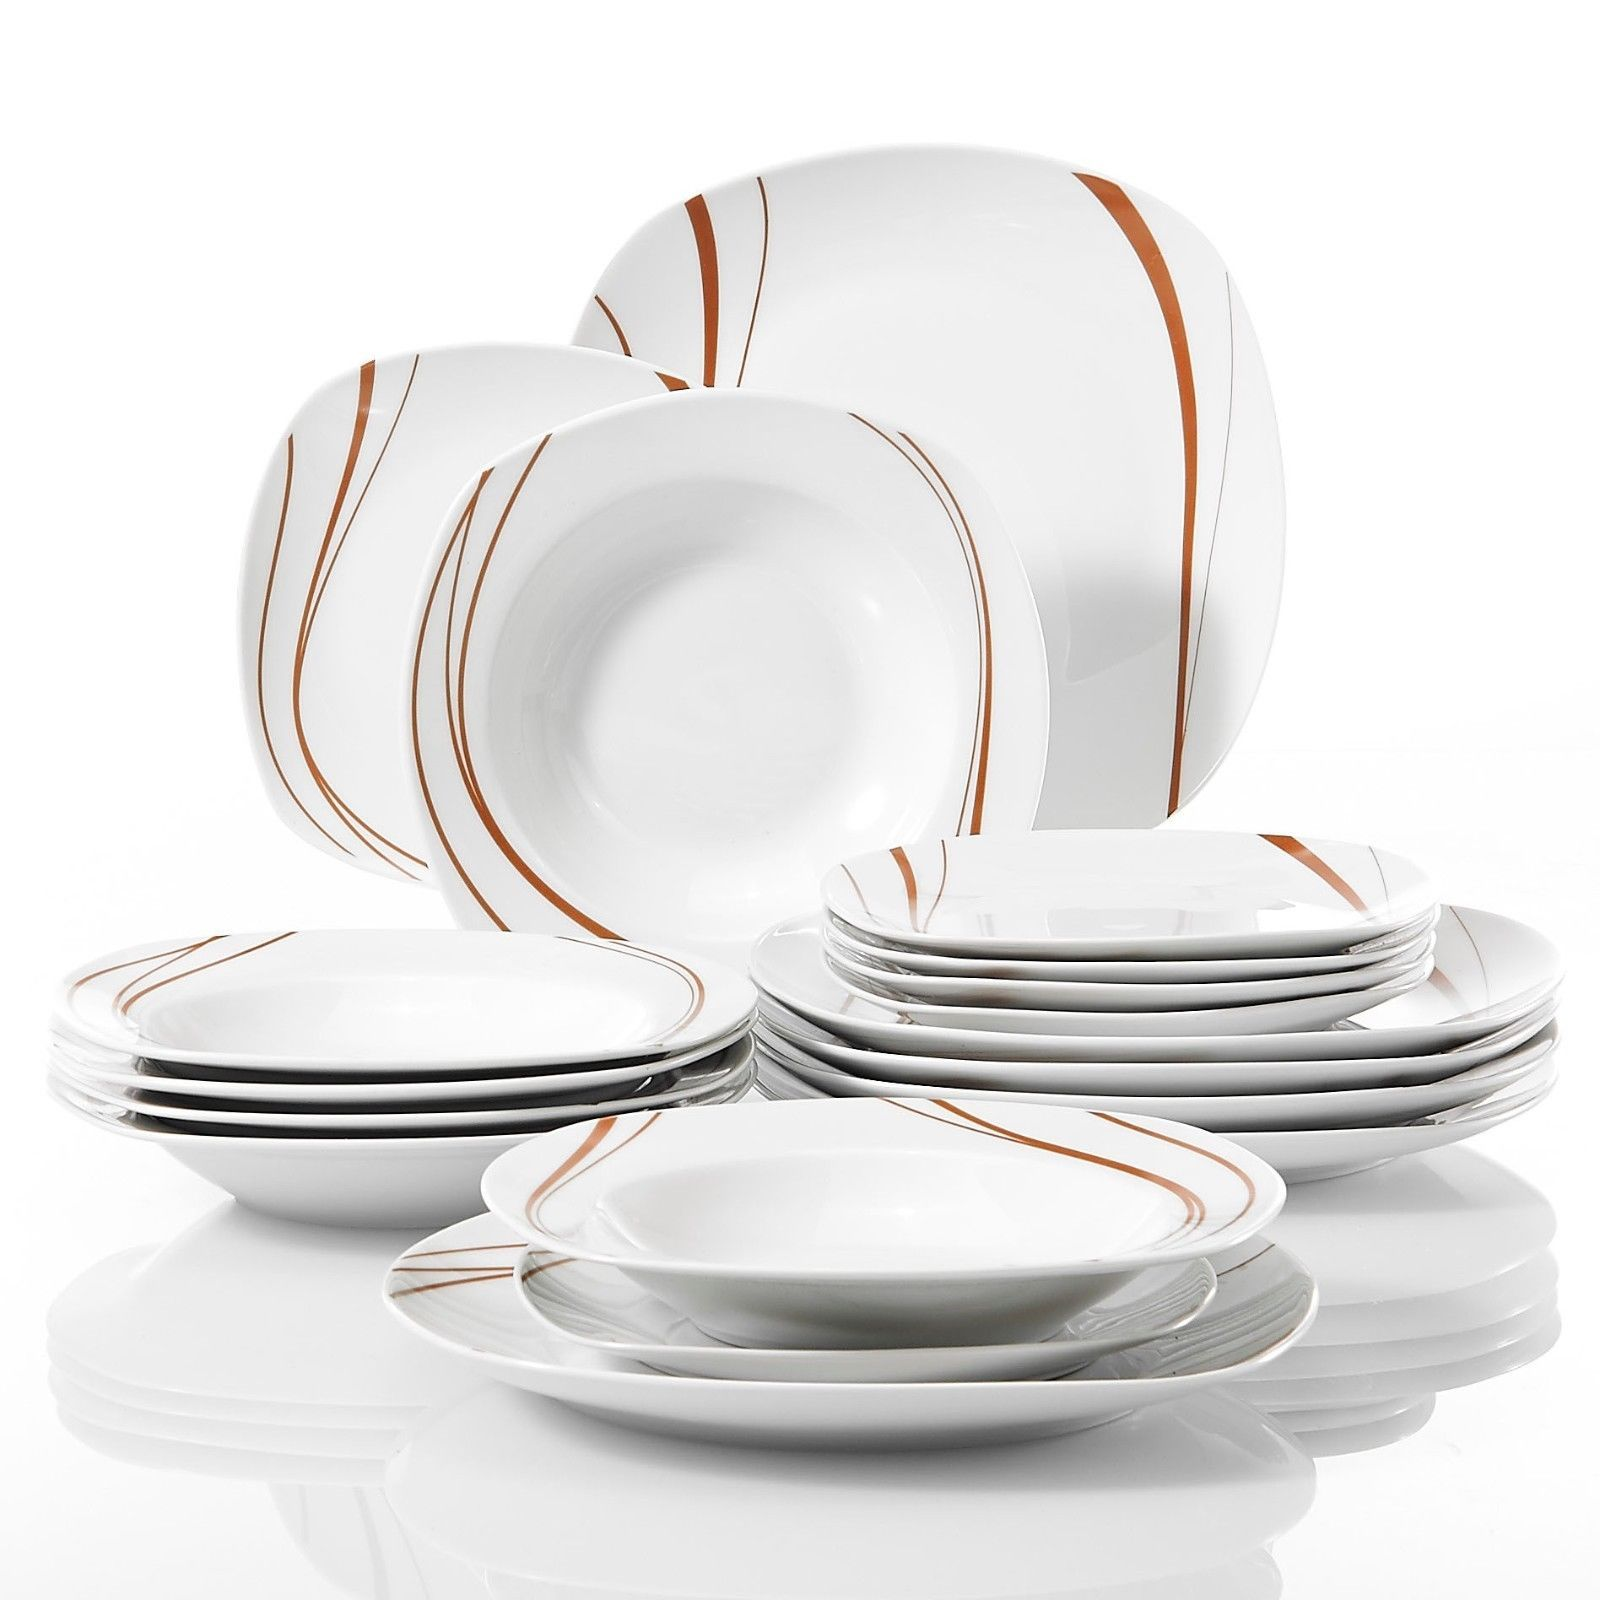 18X Porcelain Dinner Set 958575 Plates Red Stripe Great